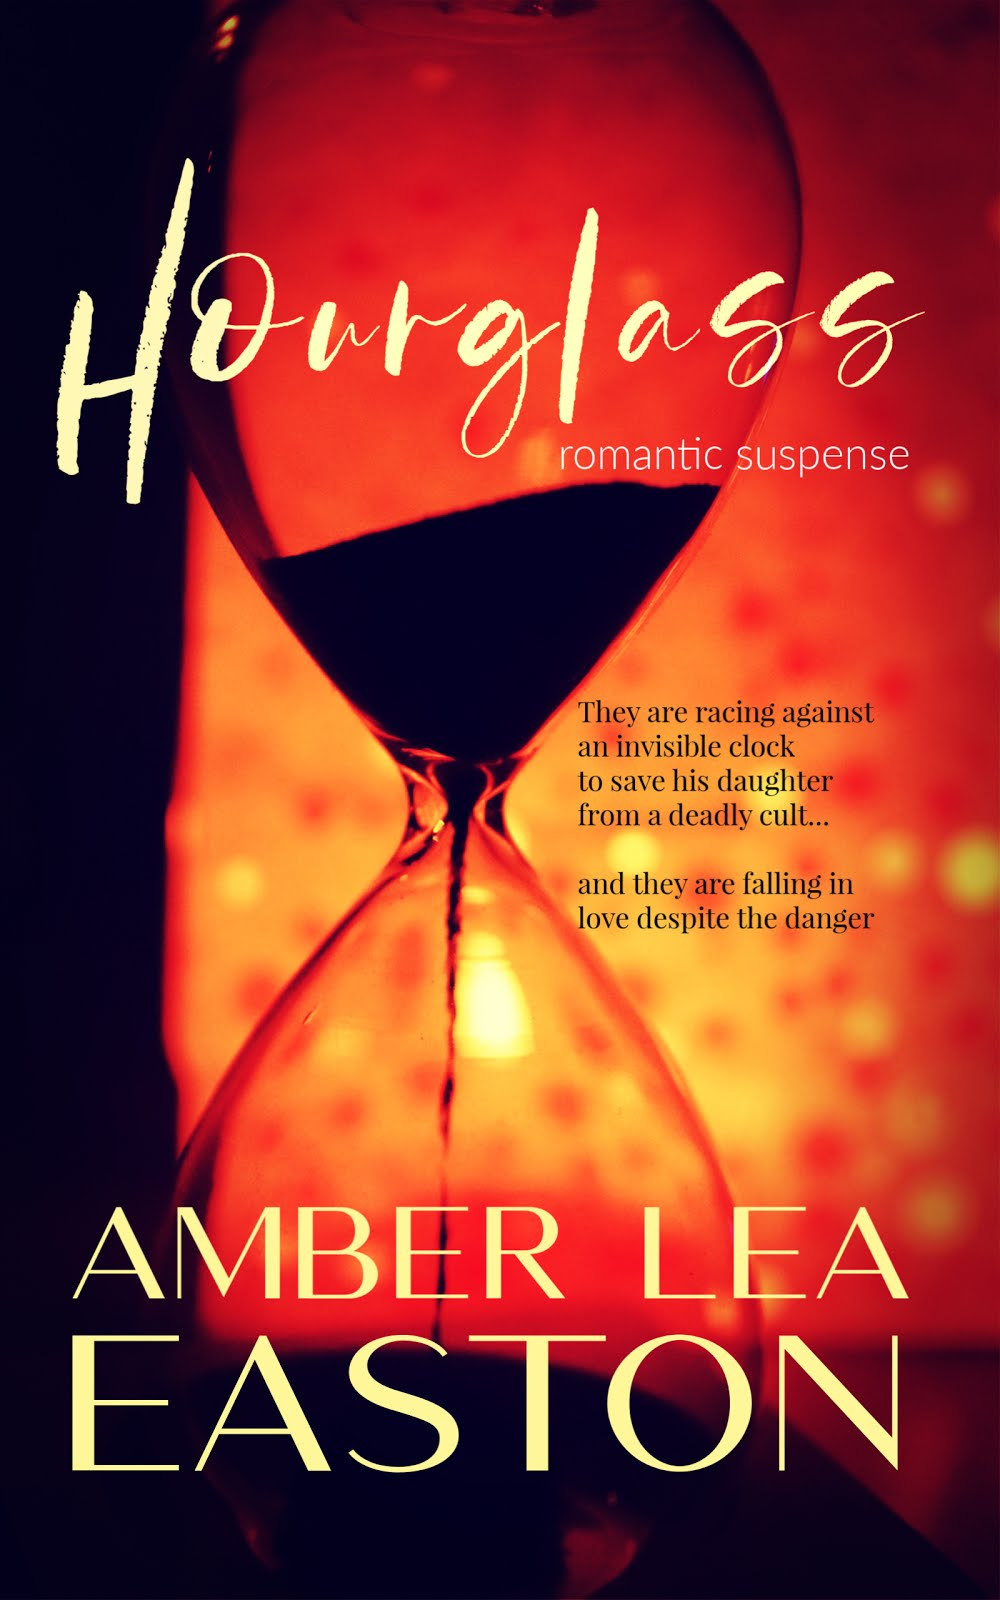 NEW RELEASE--Romance Thriller